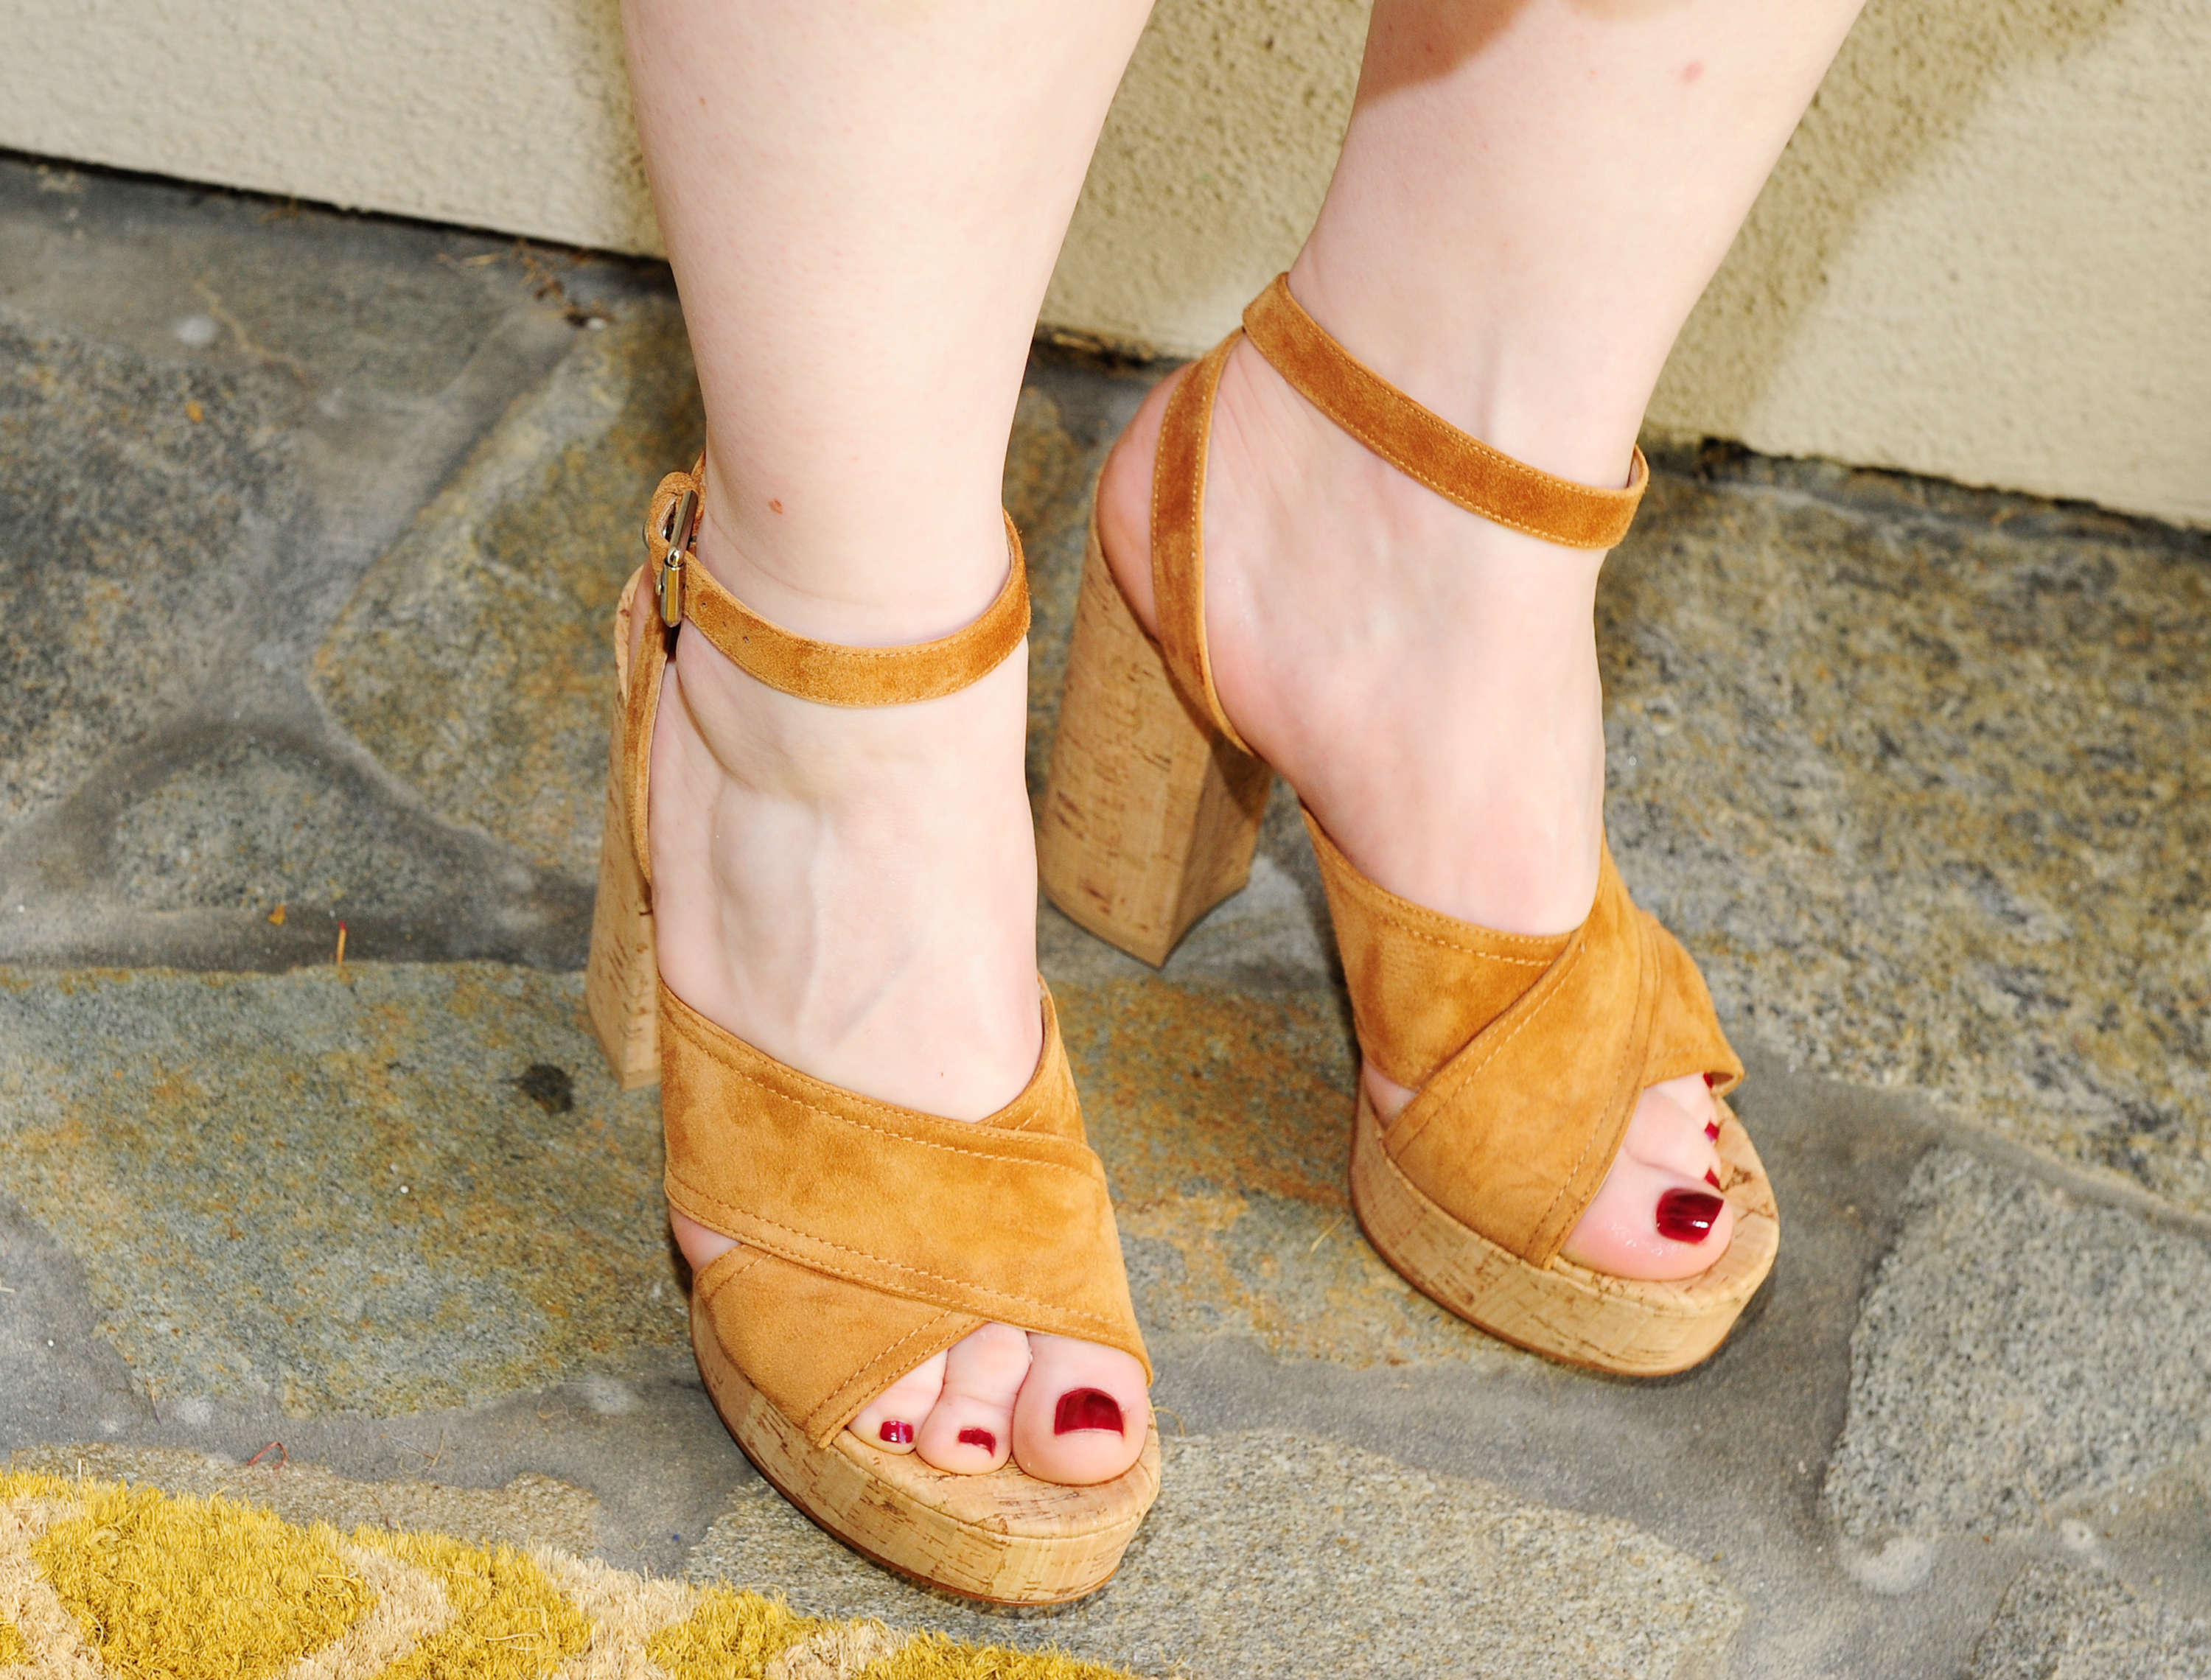 49 Sexy Bryce Dallas Howard Feet Pictures Prove That She